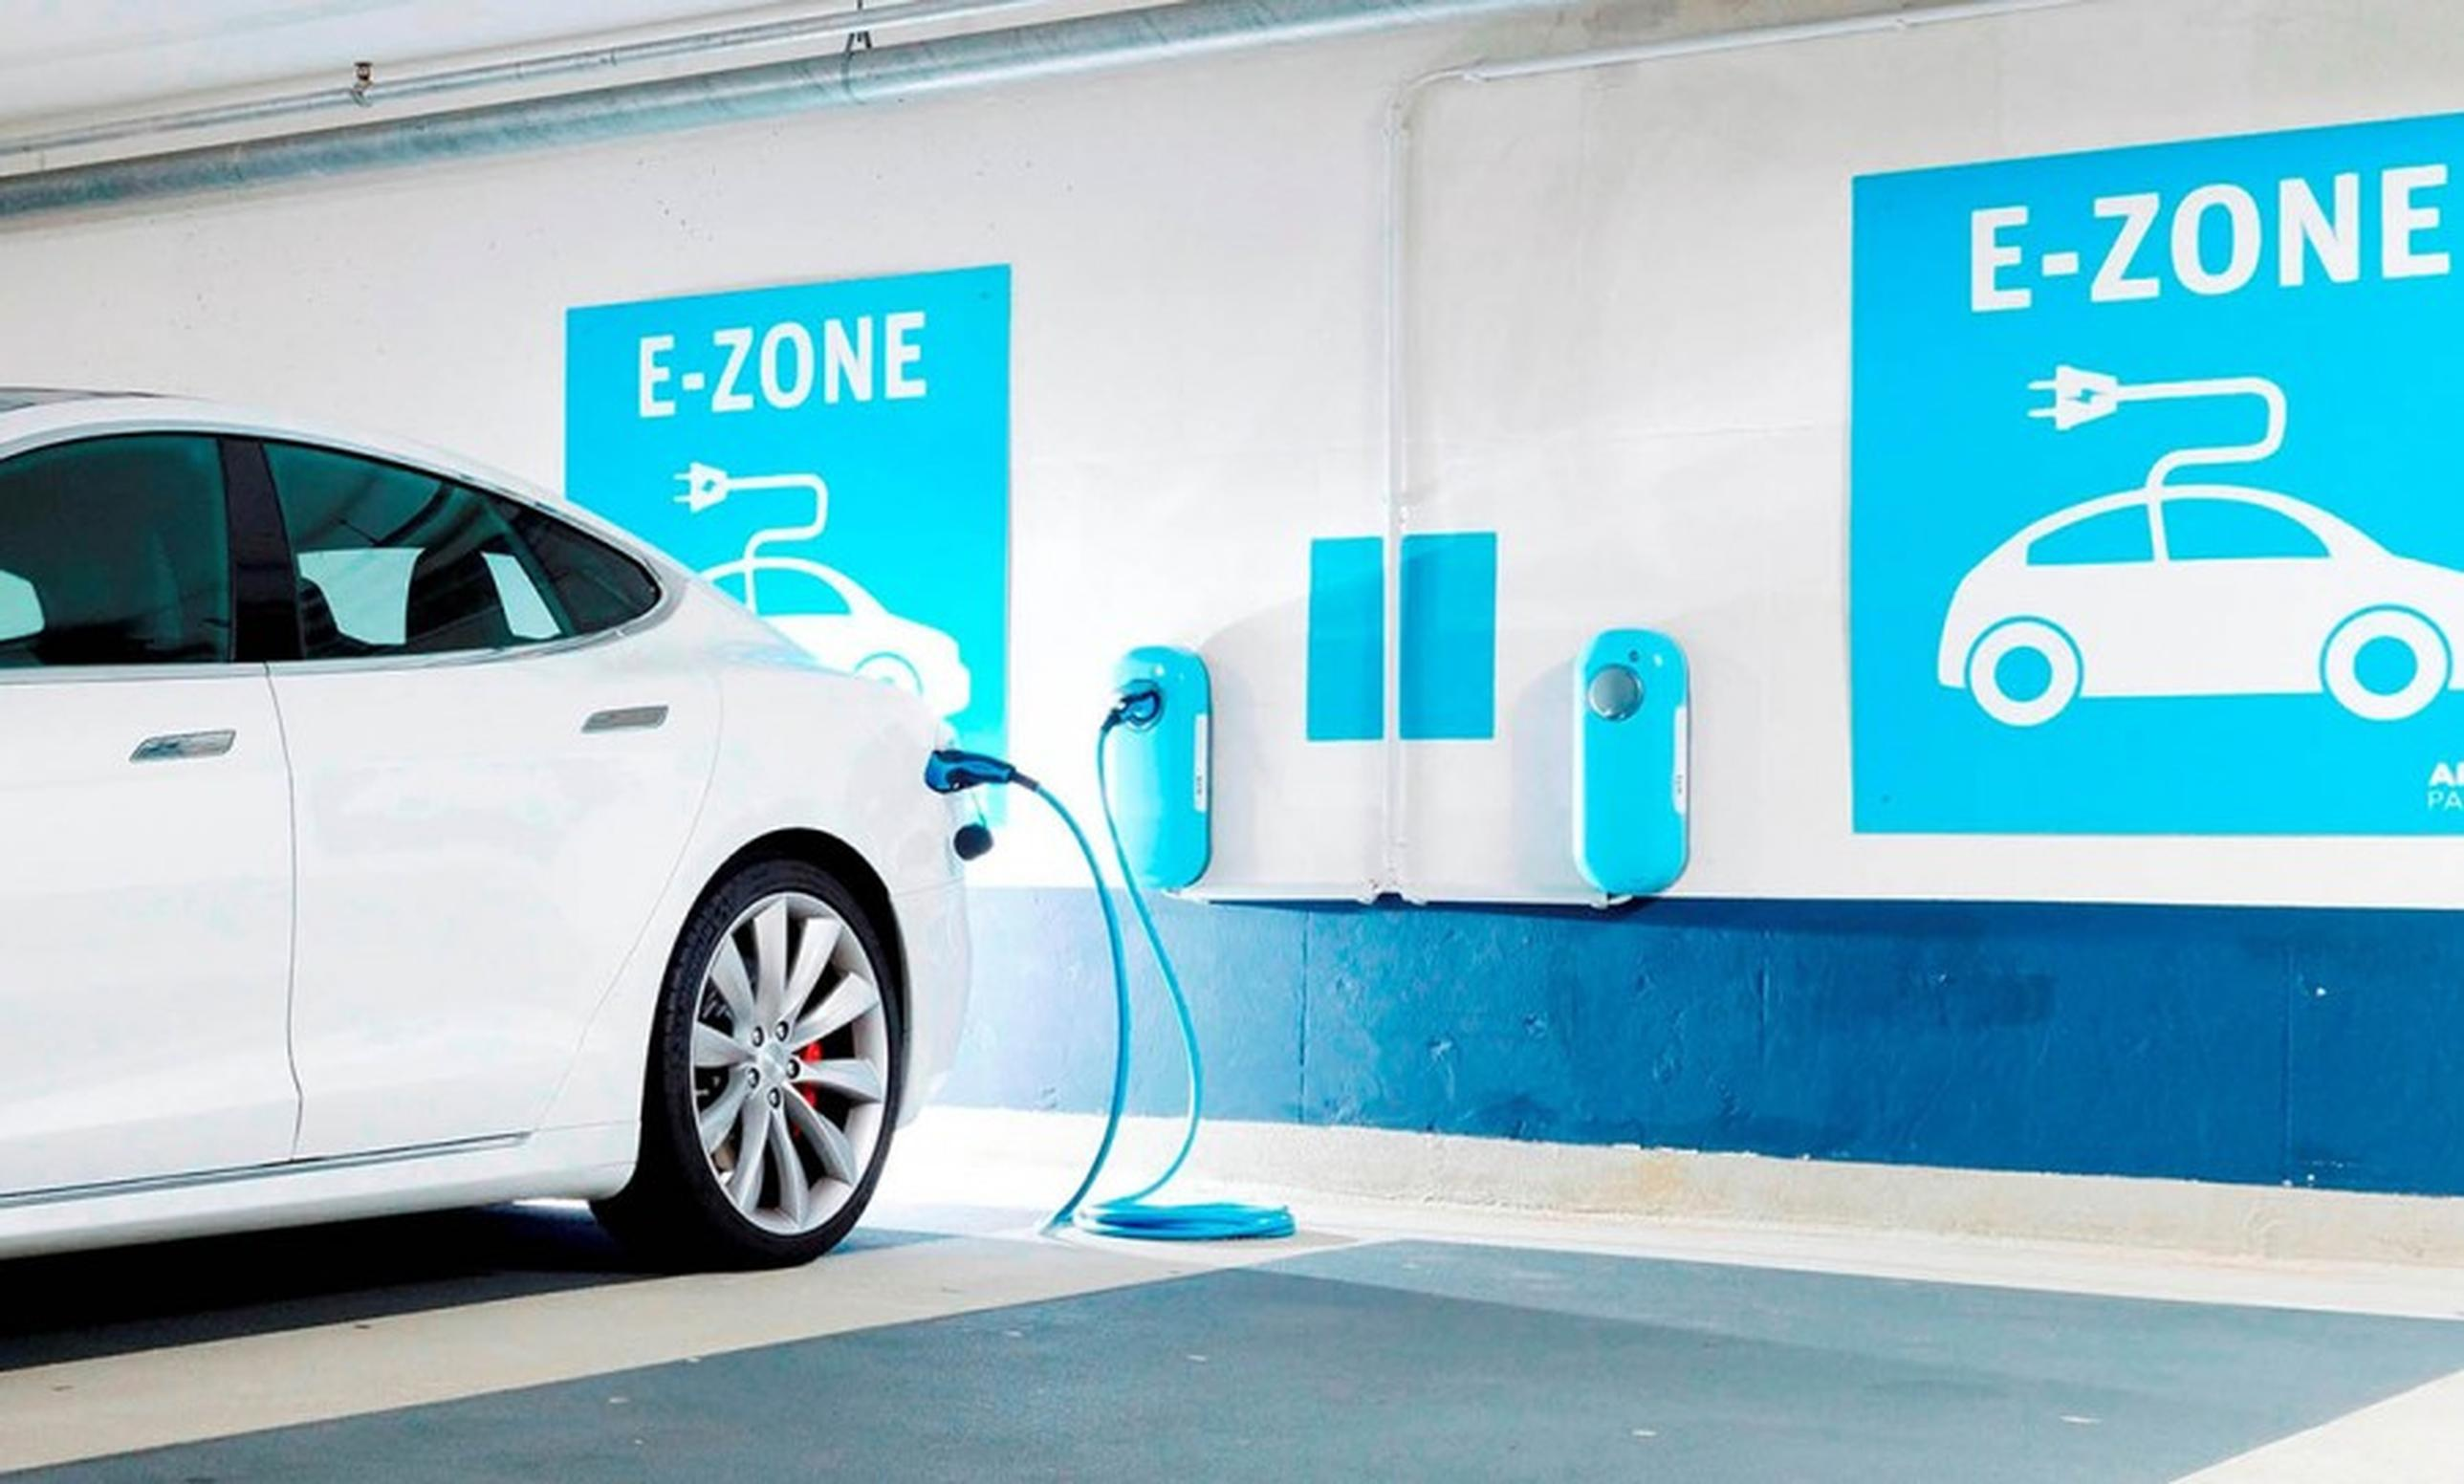 It's time to enable 'roaming' for electric car drivers